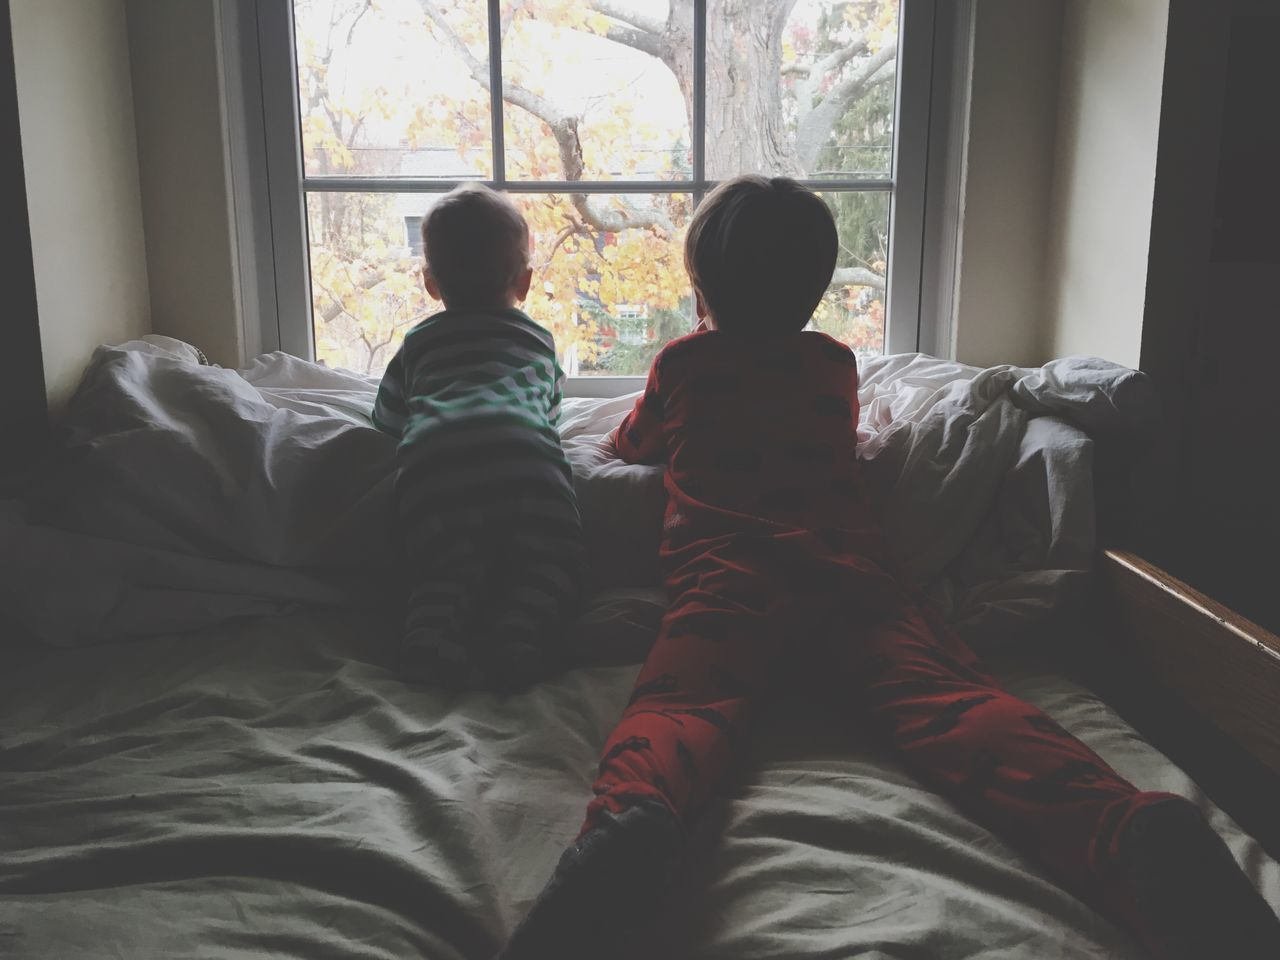 Window Child Indoors  Two People Boys Childhood Males  Togetherness Day Bonding Real People People Brothers Family Sunday Morning